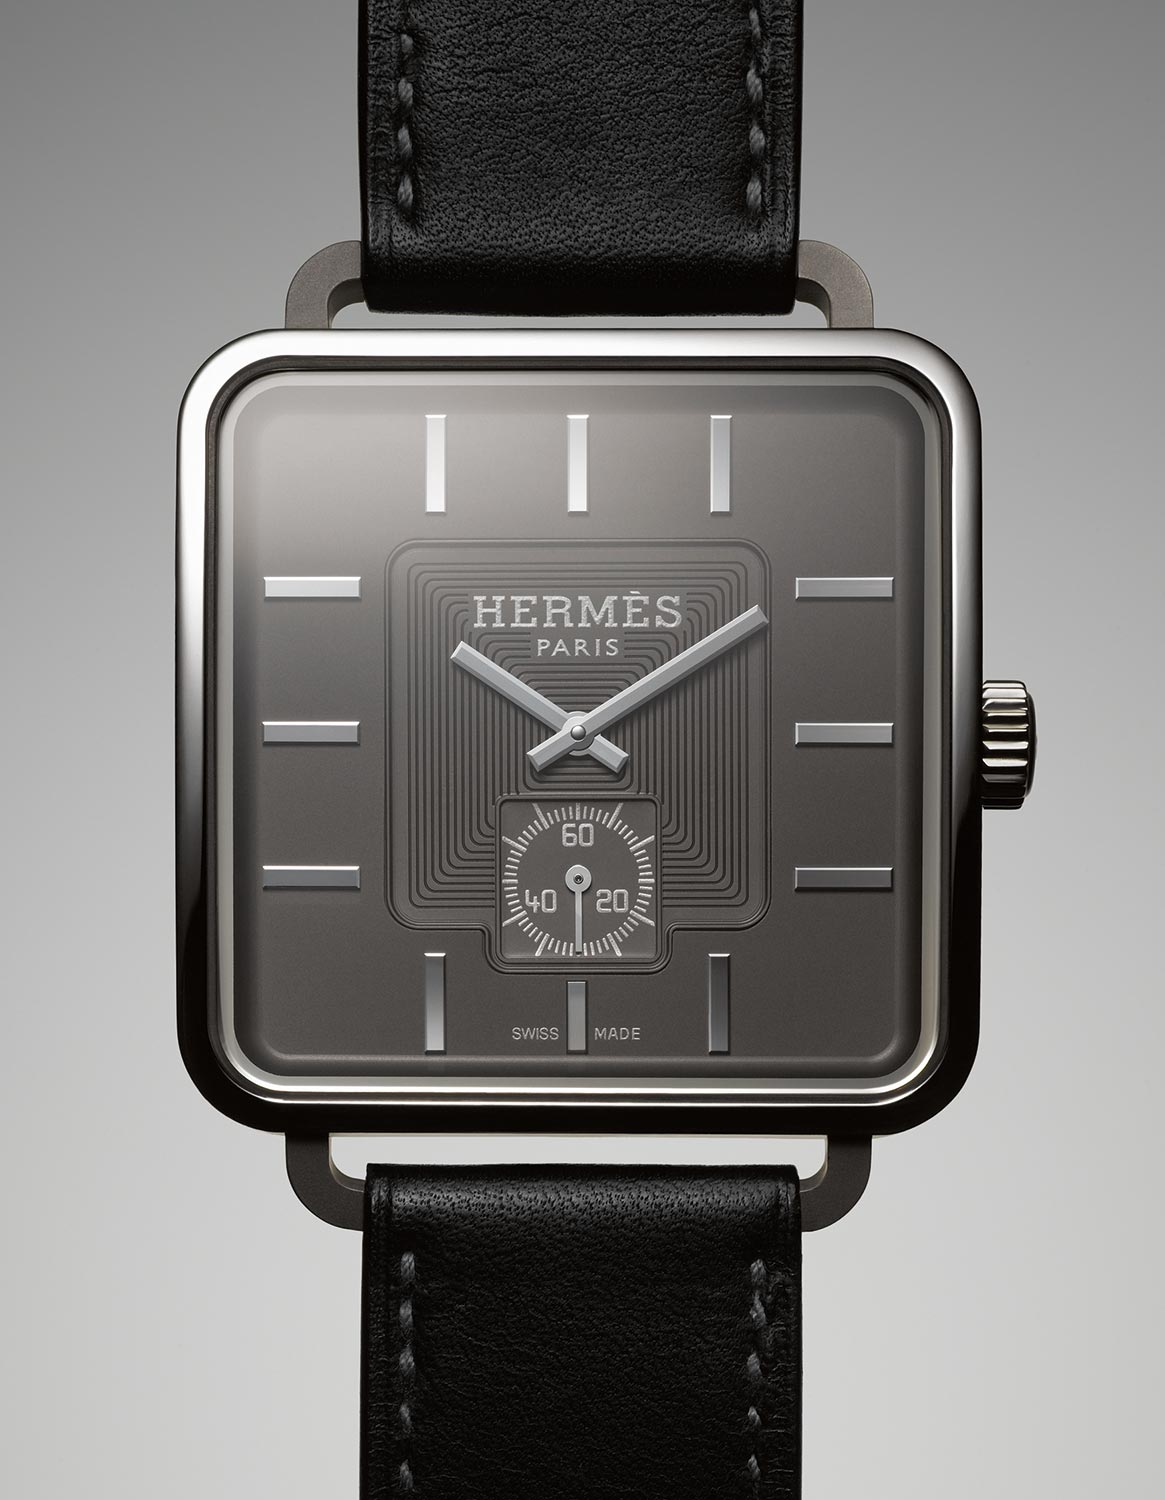 Square H 2010, The Hermes Watch.